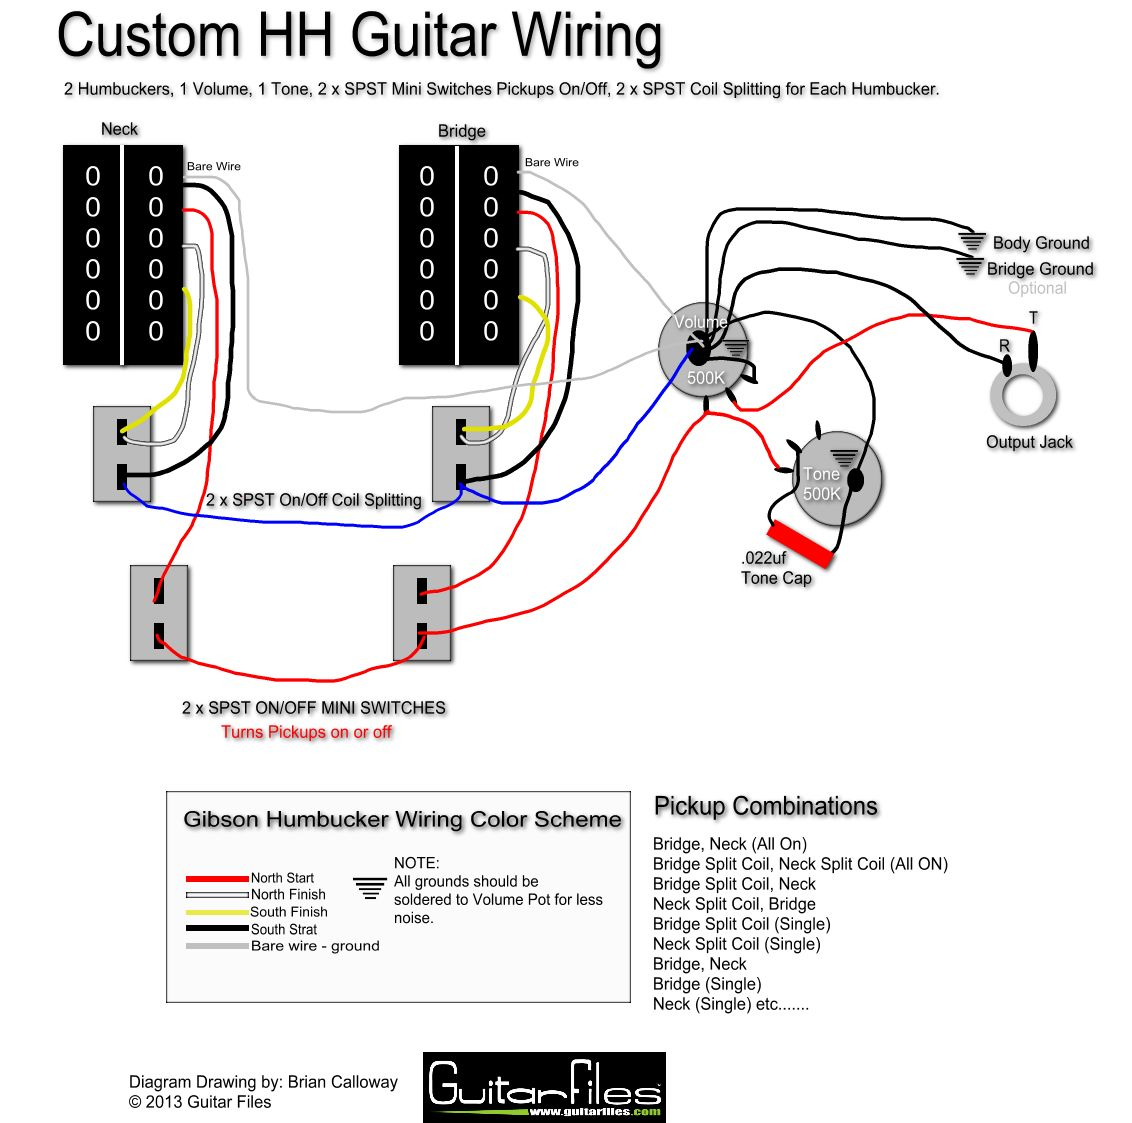 afe4f8370c0d308d426df63ec12f015c hh wiring diagram fender stagemaster hh wiring diagram \u2022 wiring  at alyssarenee.co